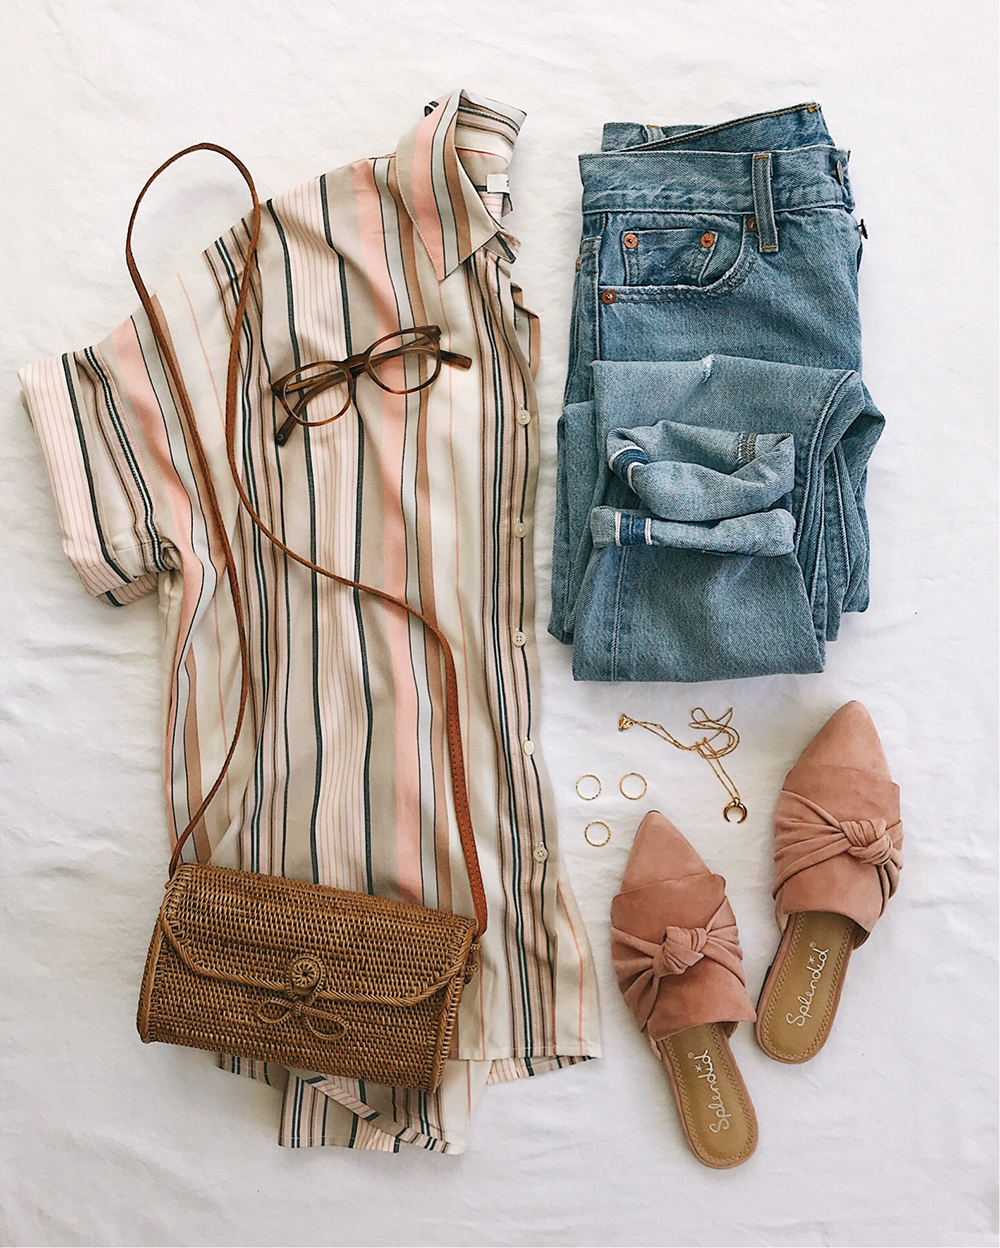 livvyland-blog-olivia-watson-flat-lay-madewell-courier-button-up-short-sleeve-top-blush-pink-slip-on-mules-slides